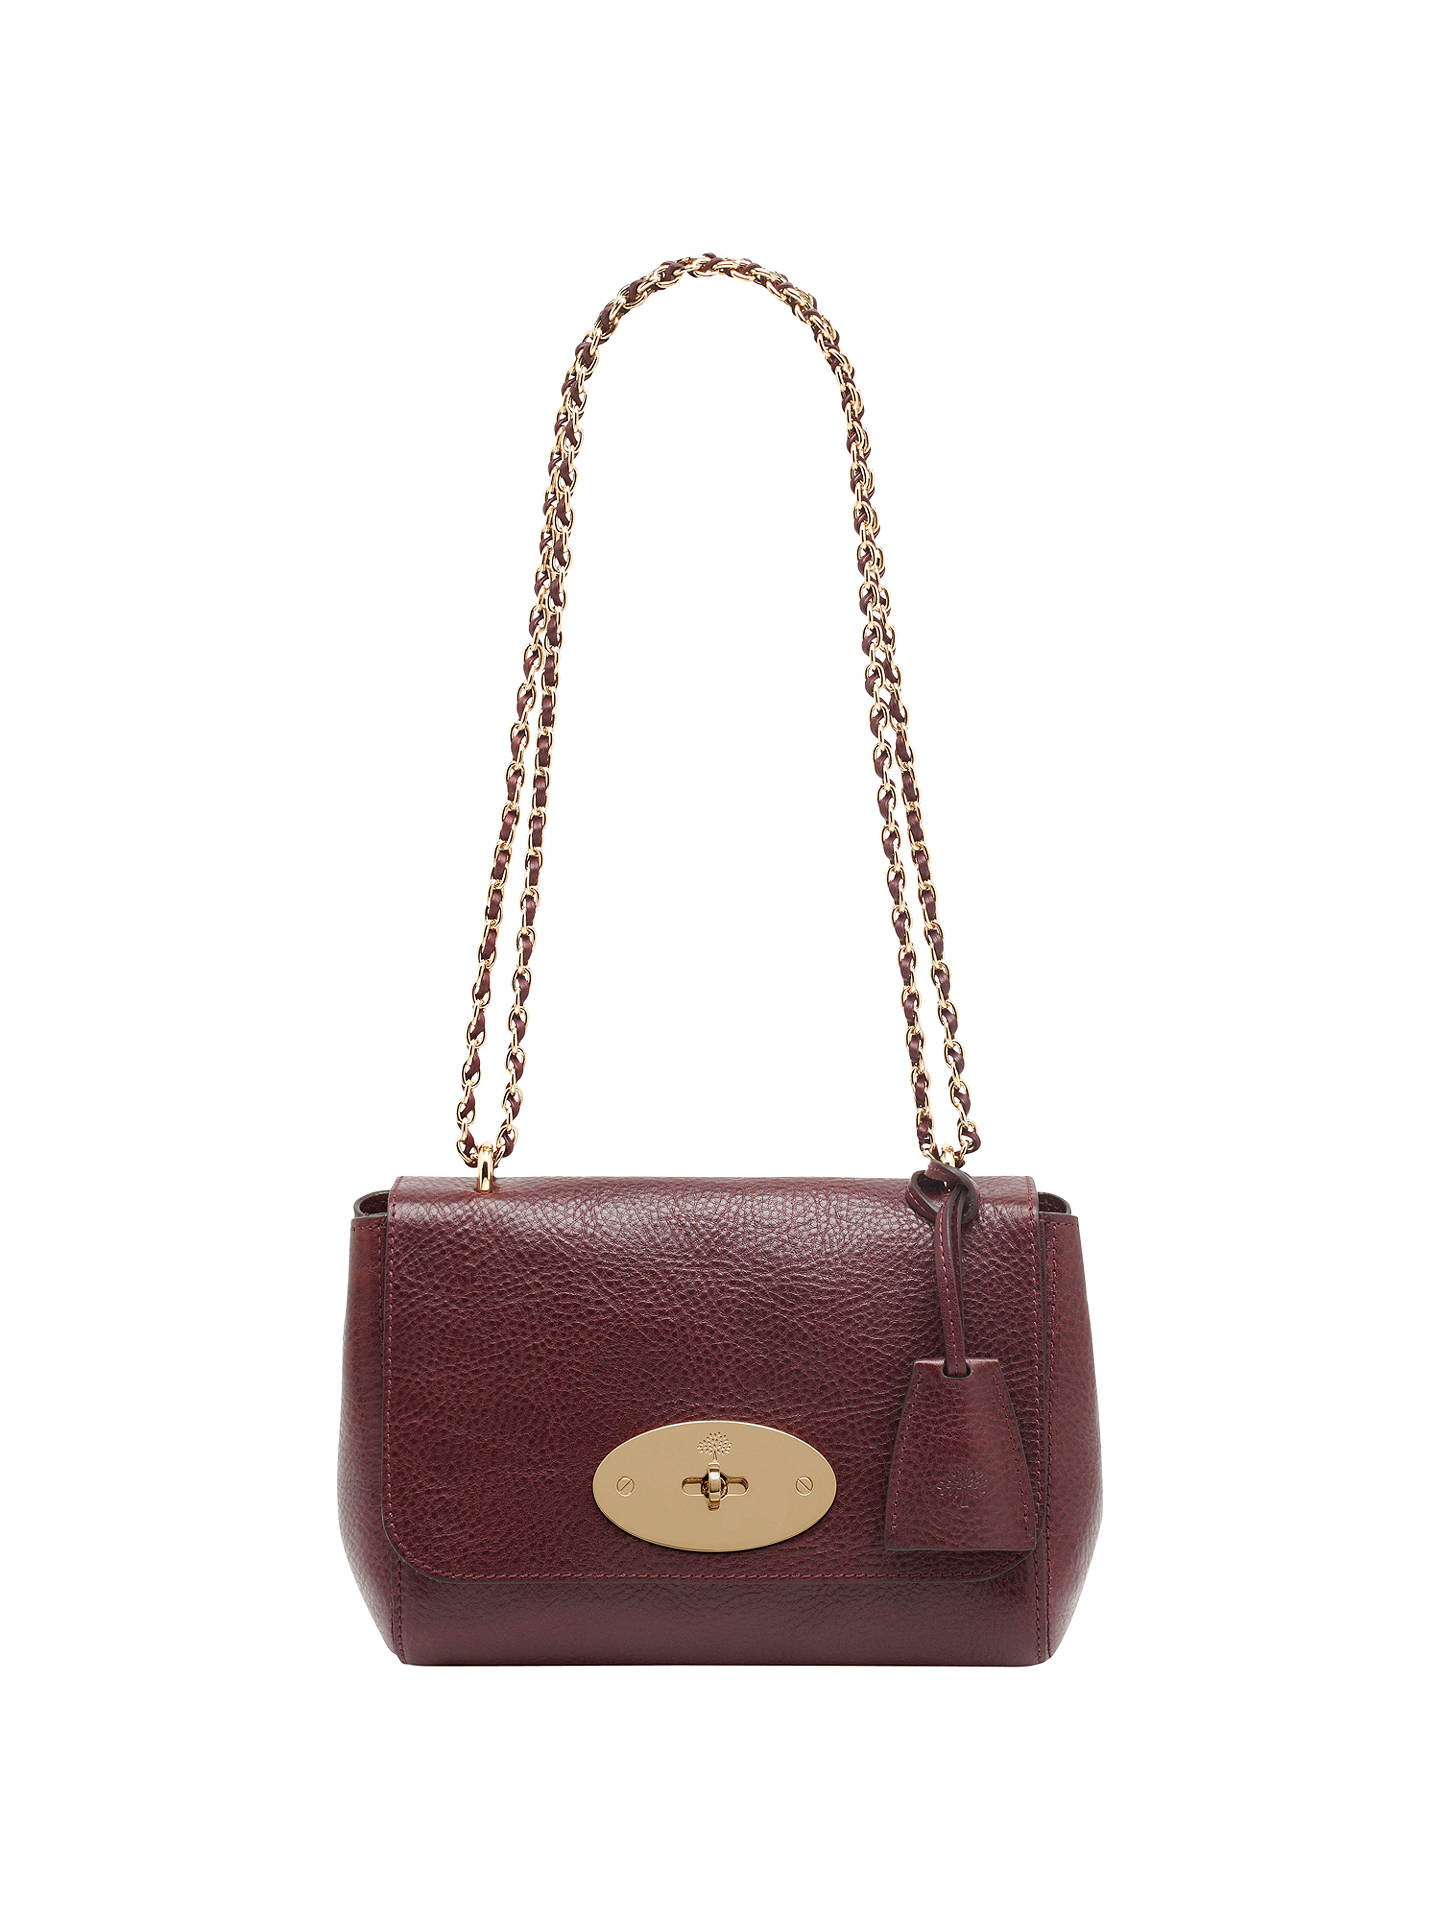 45c8385bc8 Mulberry Lily Small Leather Shoulder Bag at John Lewis   Partners